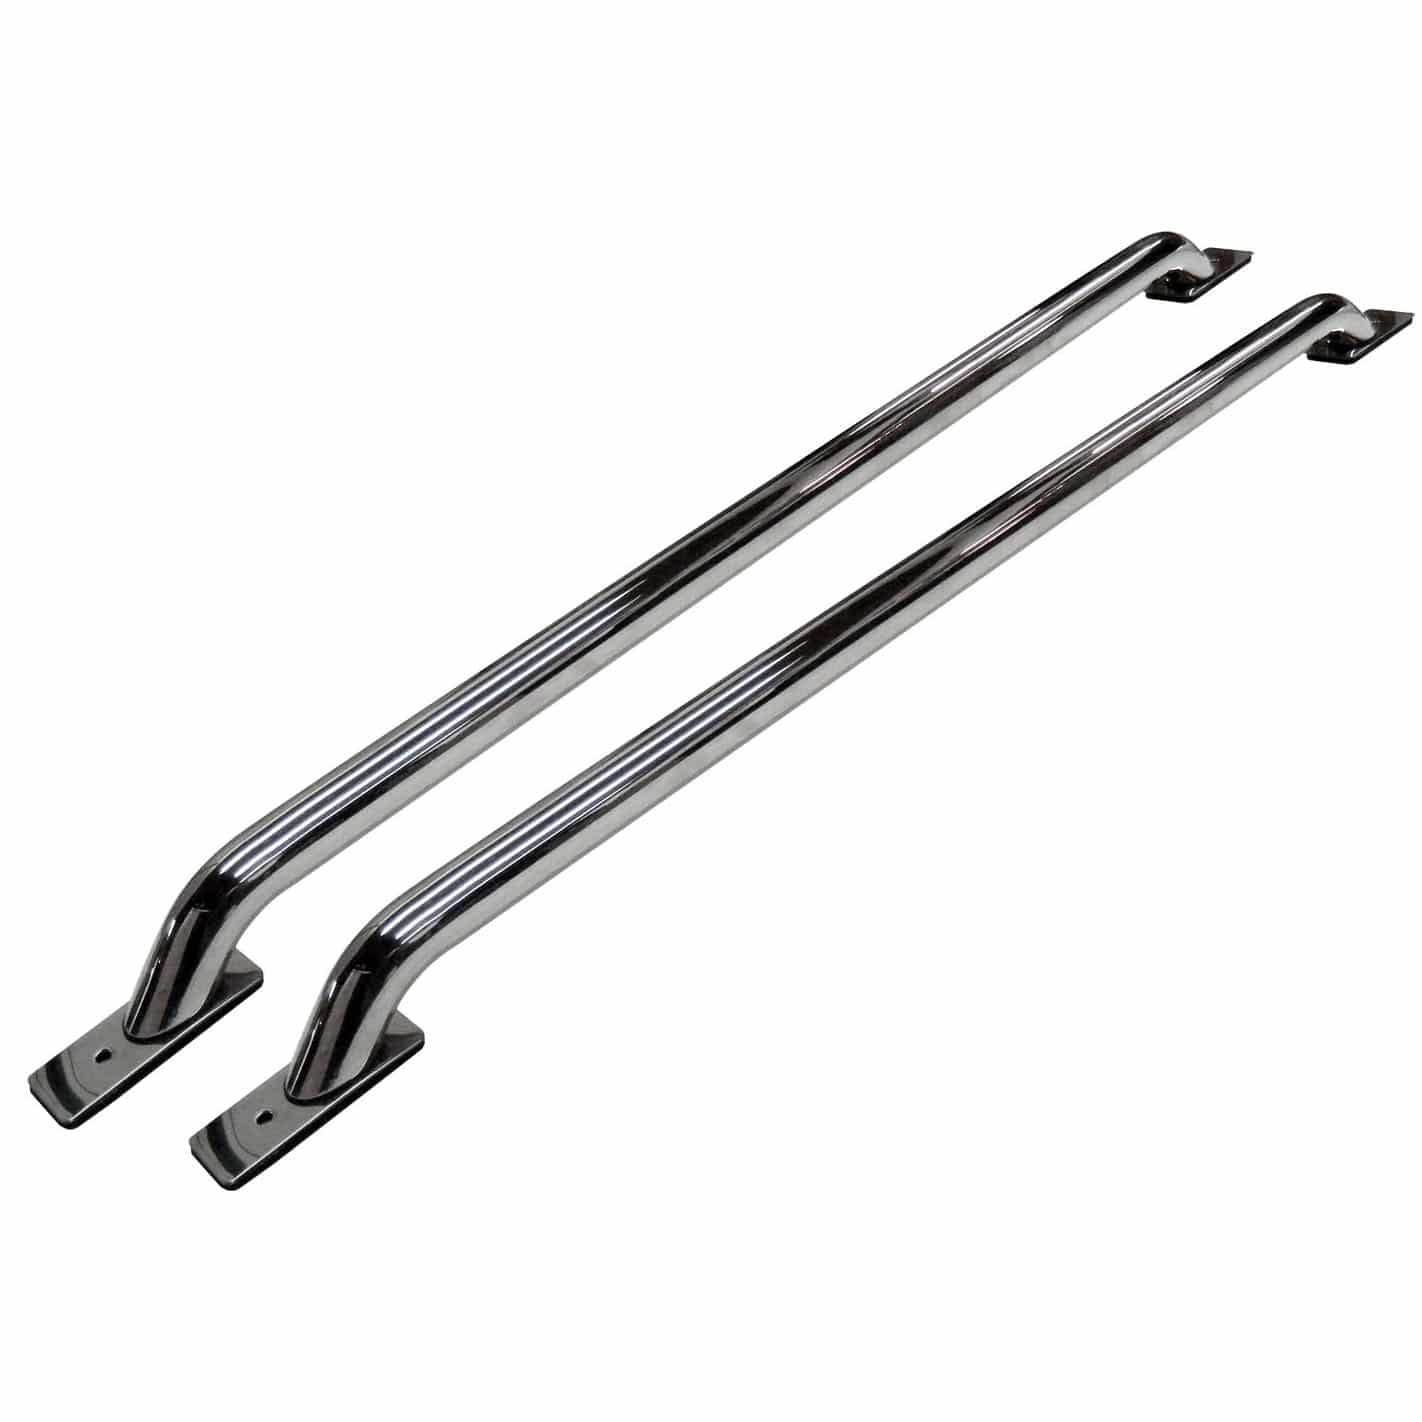 Go Rhino Chrome Truck Bed Rails